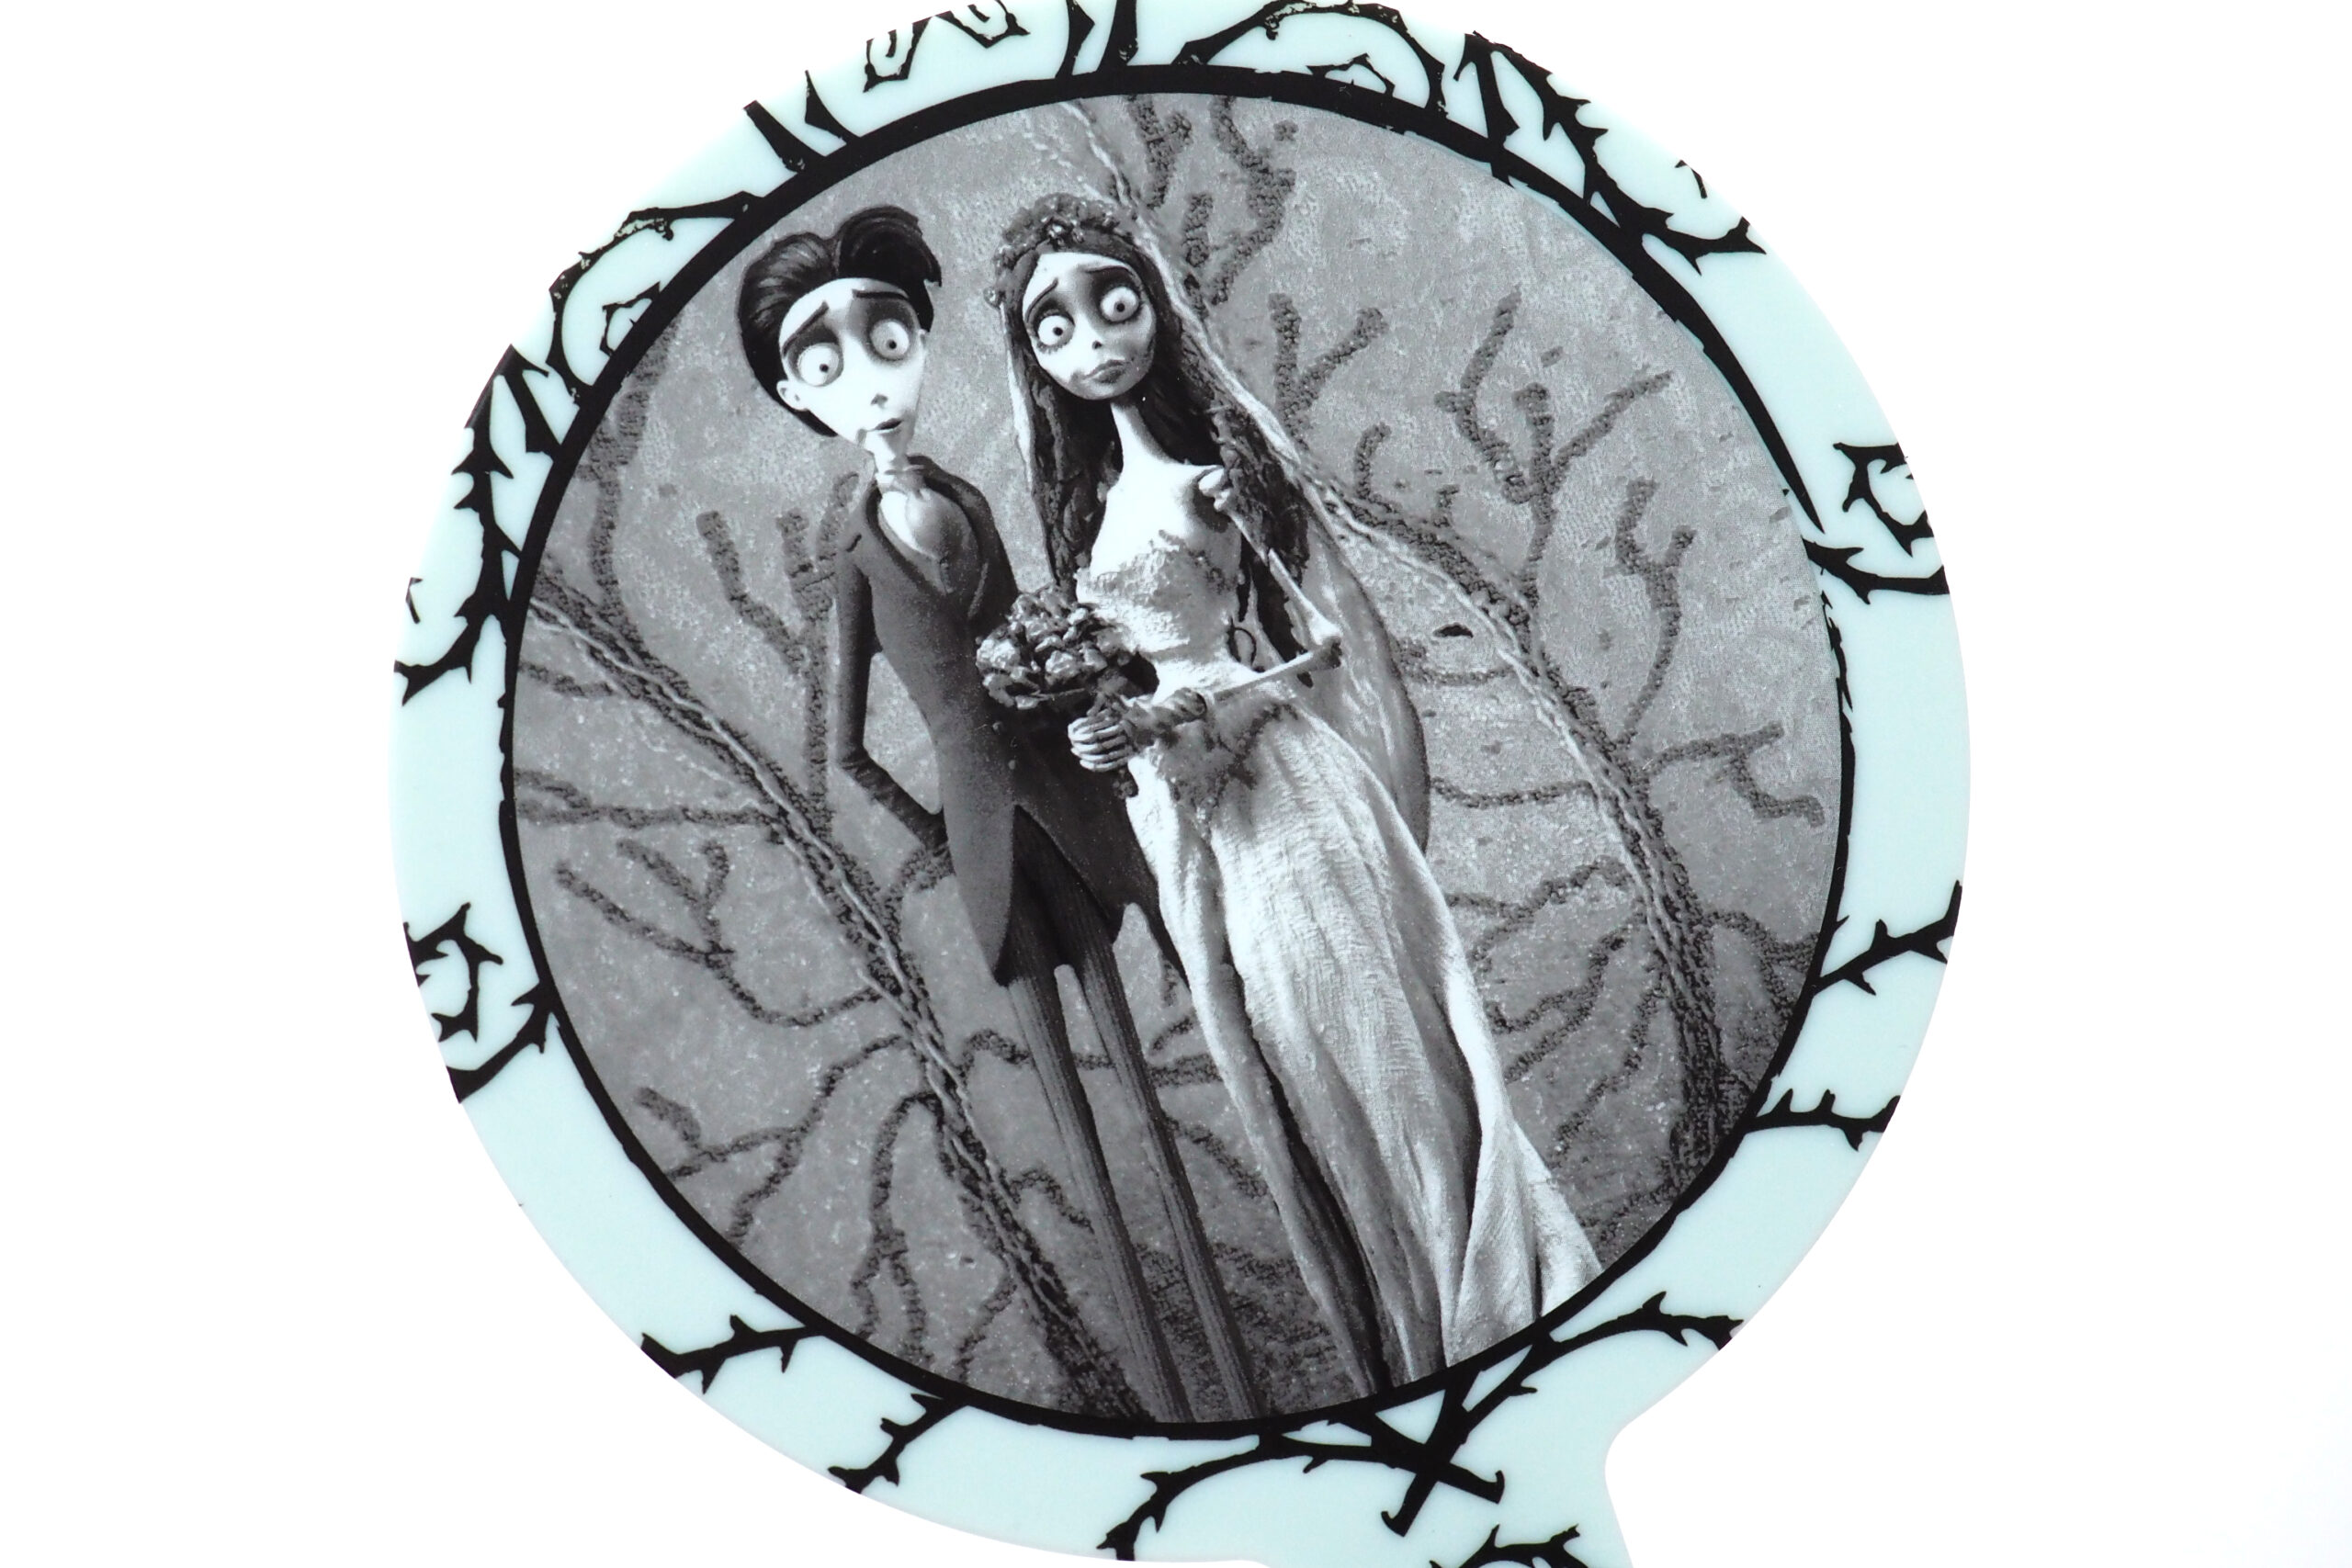 Revolution x Corpse Bride Collaboration Review, Swatches PLUS GIVEAWAY!